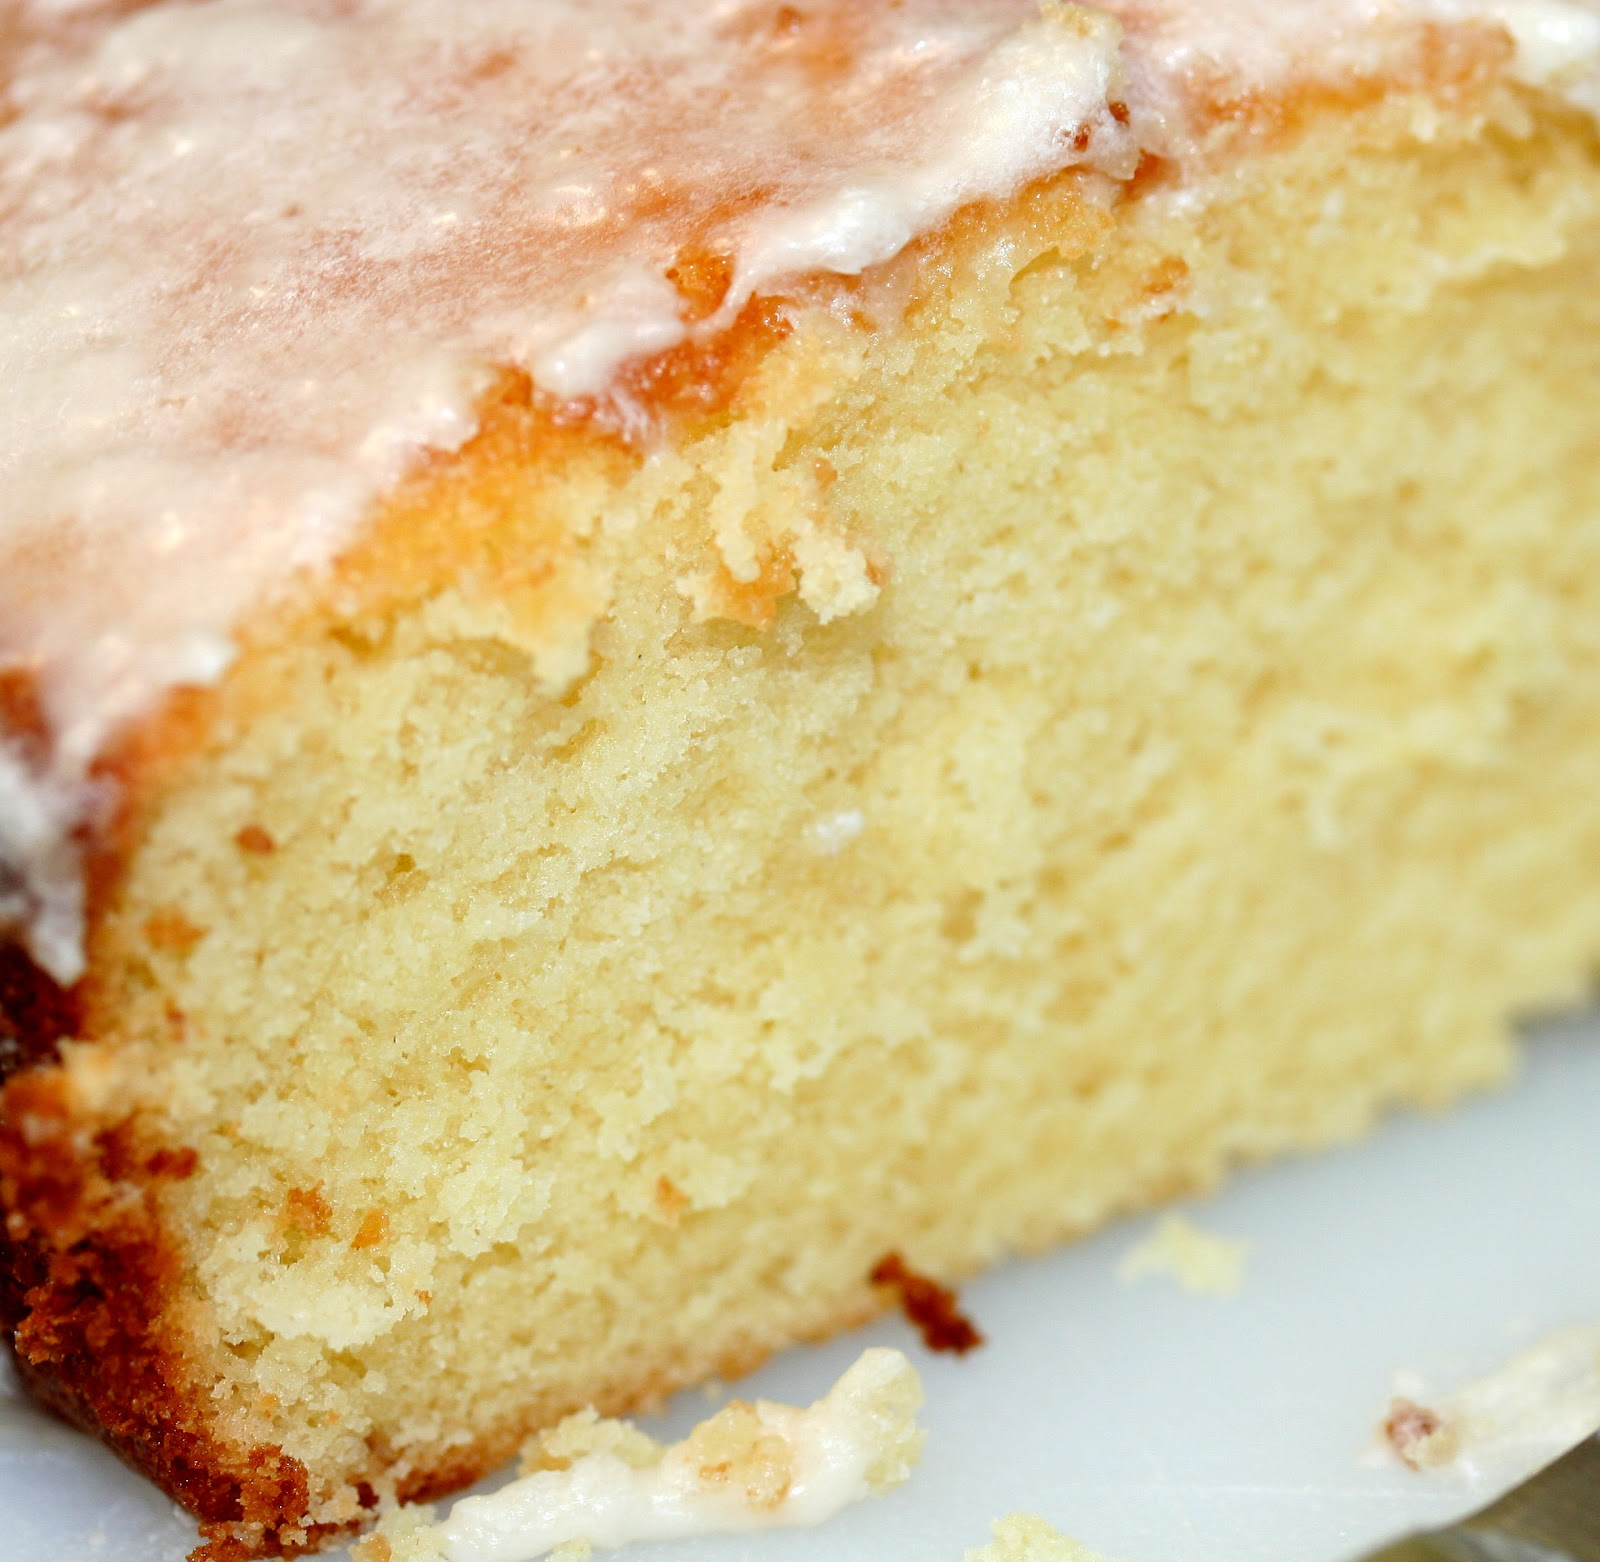 Culturally Confused: Gourmet: Glazed Lemon Pound Cake